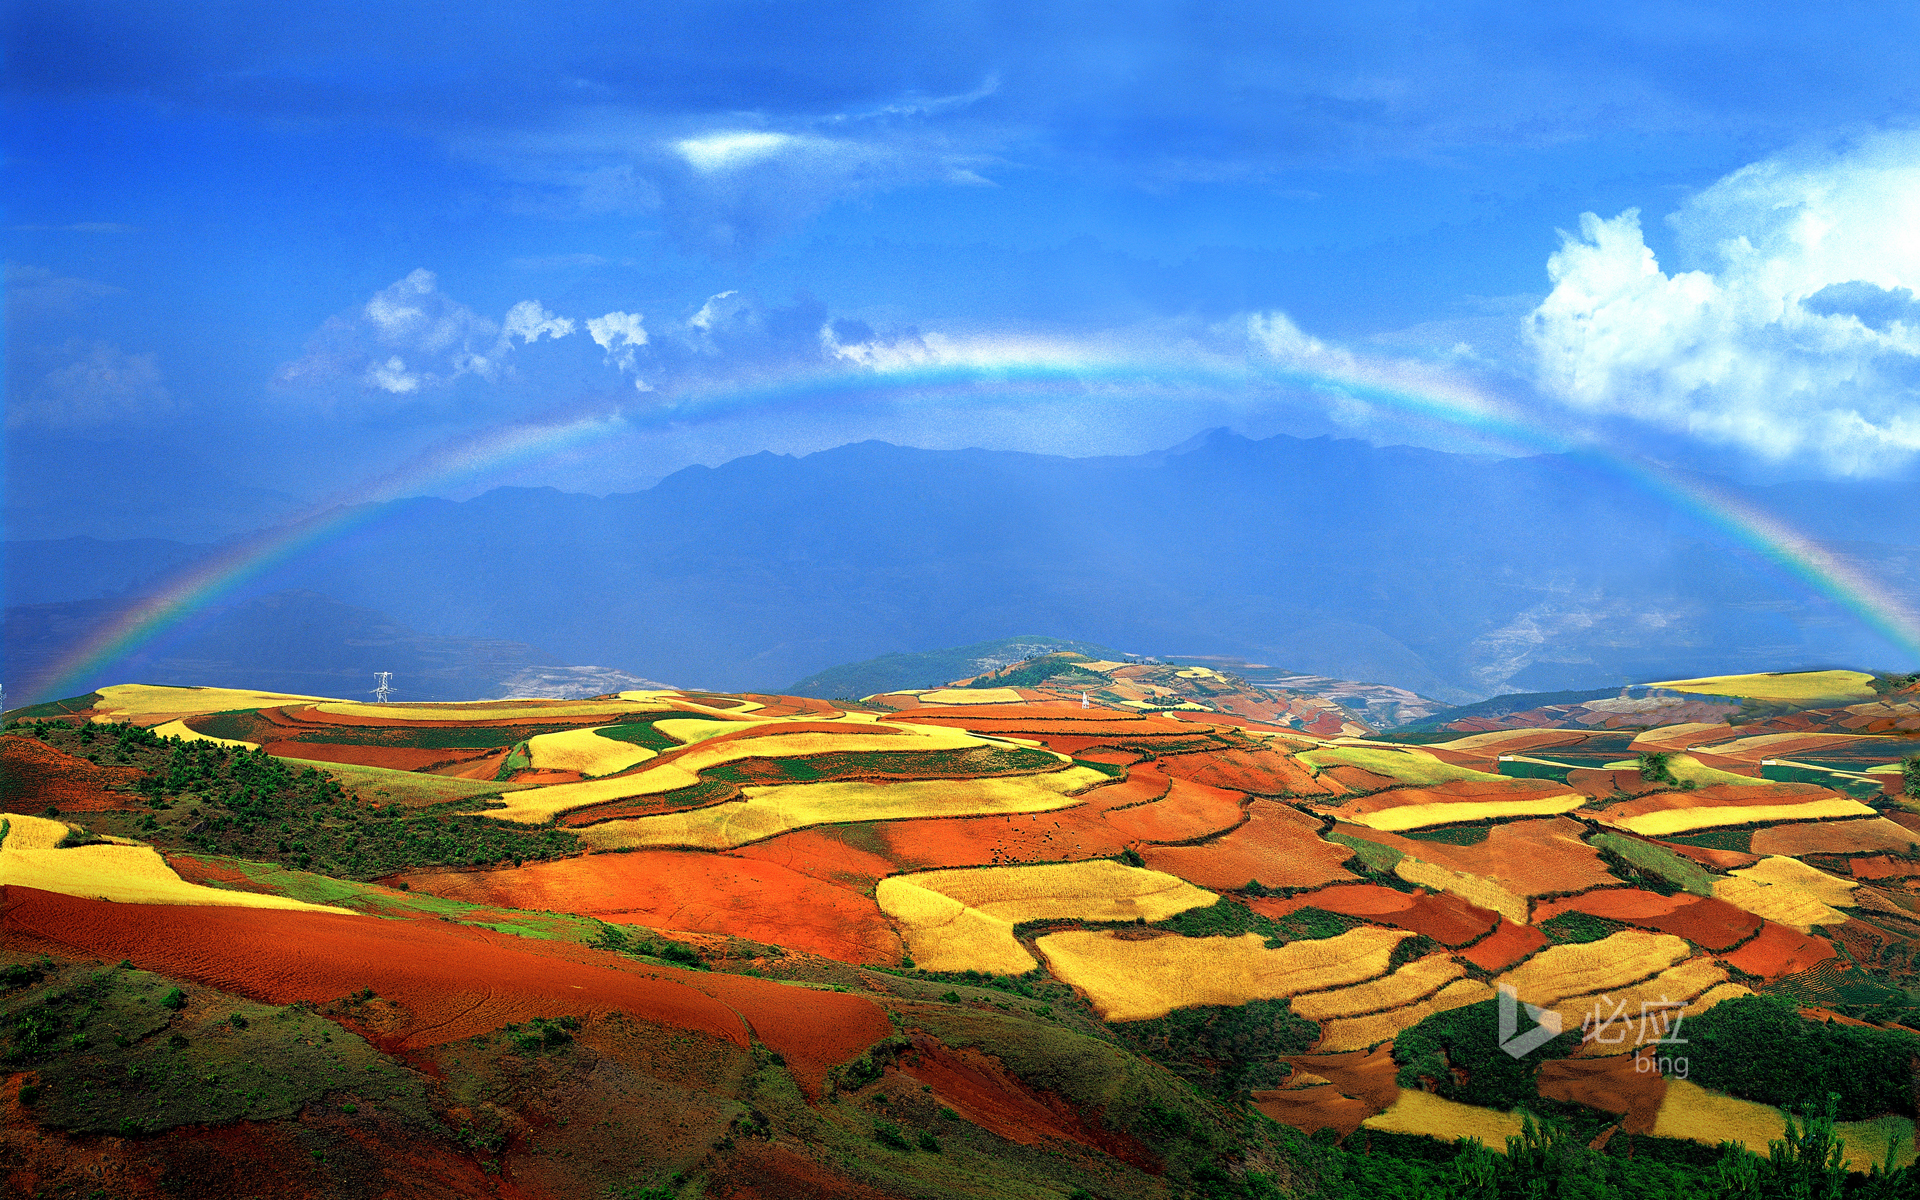 Rainbow over red land